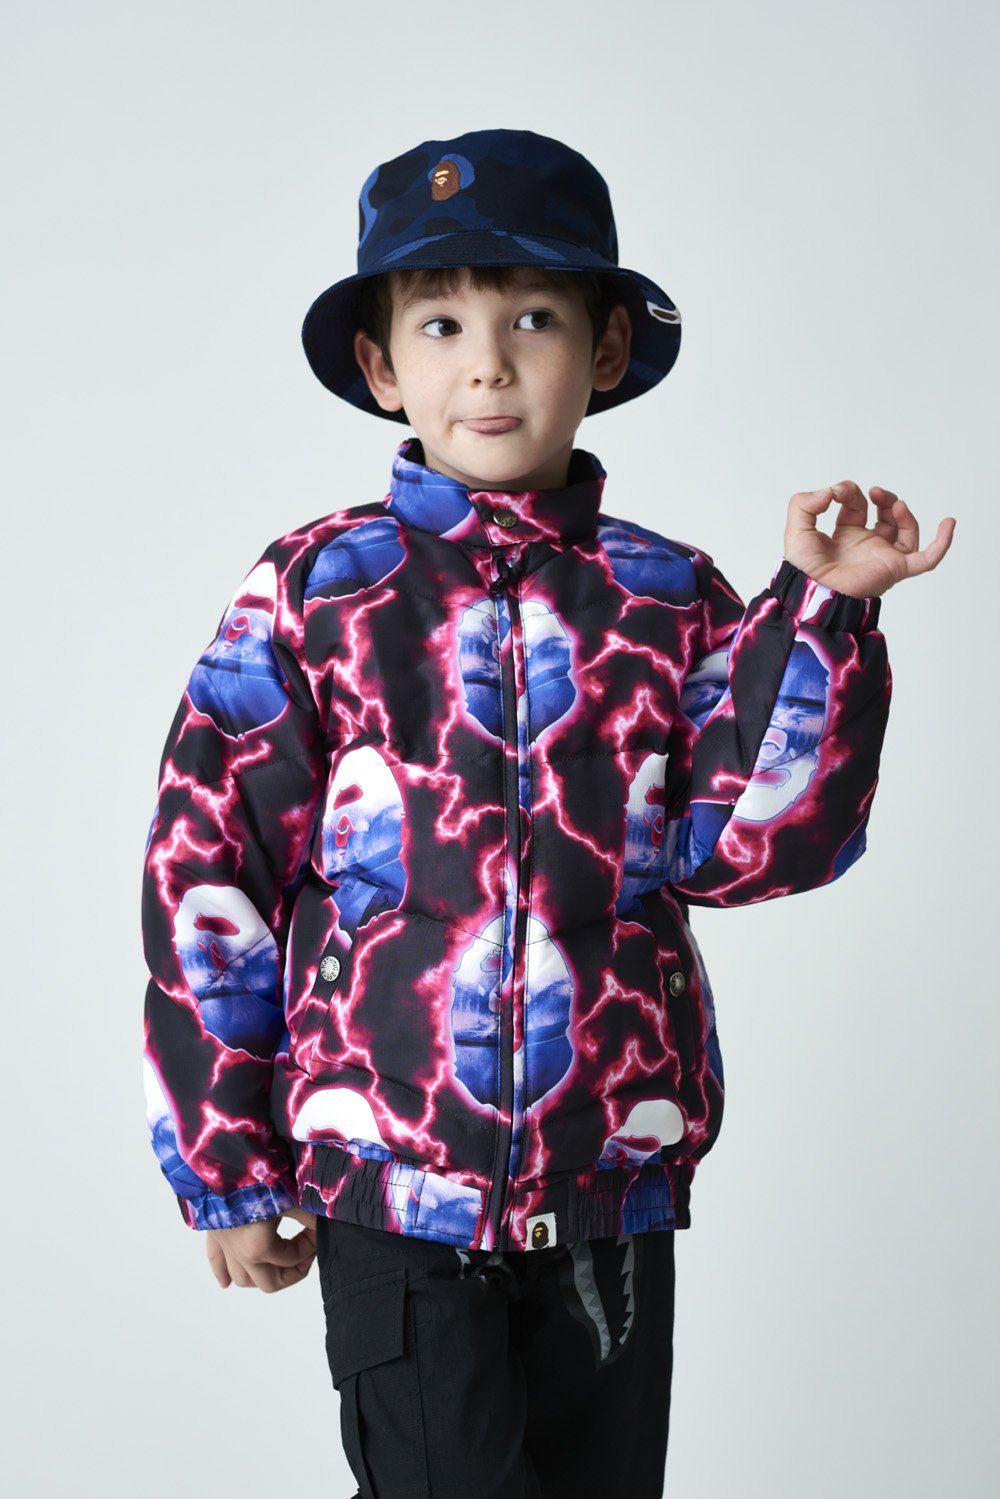 2020 AW KIDS'/JUNIORS' LOOKBOOK 3